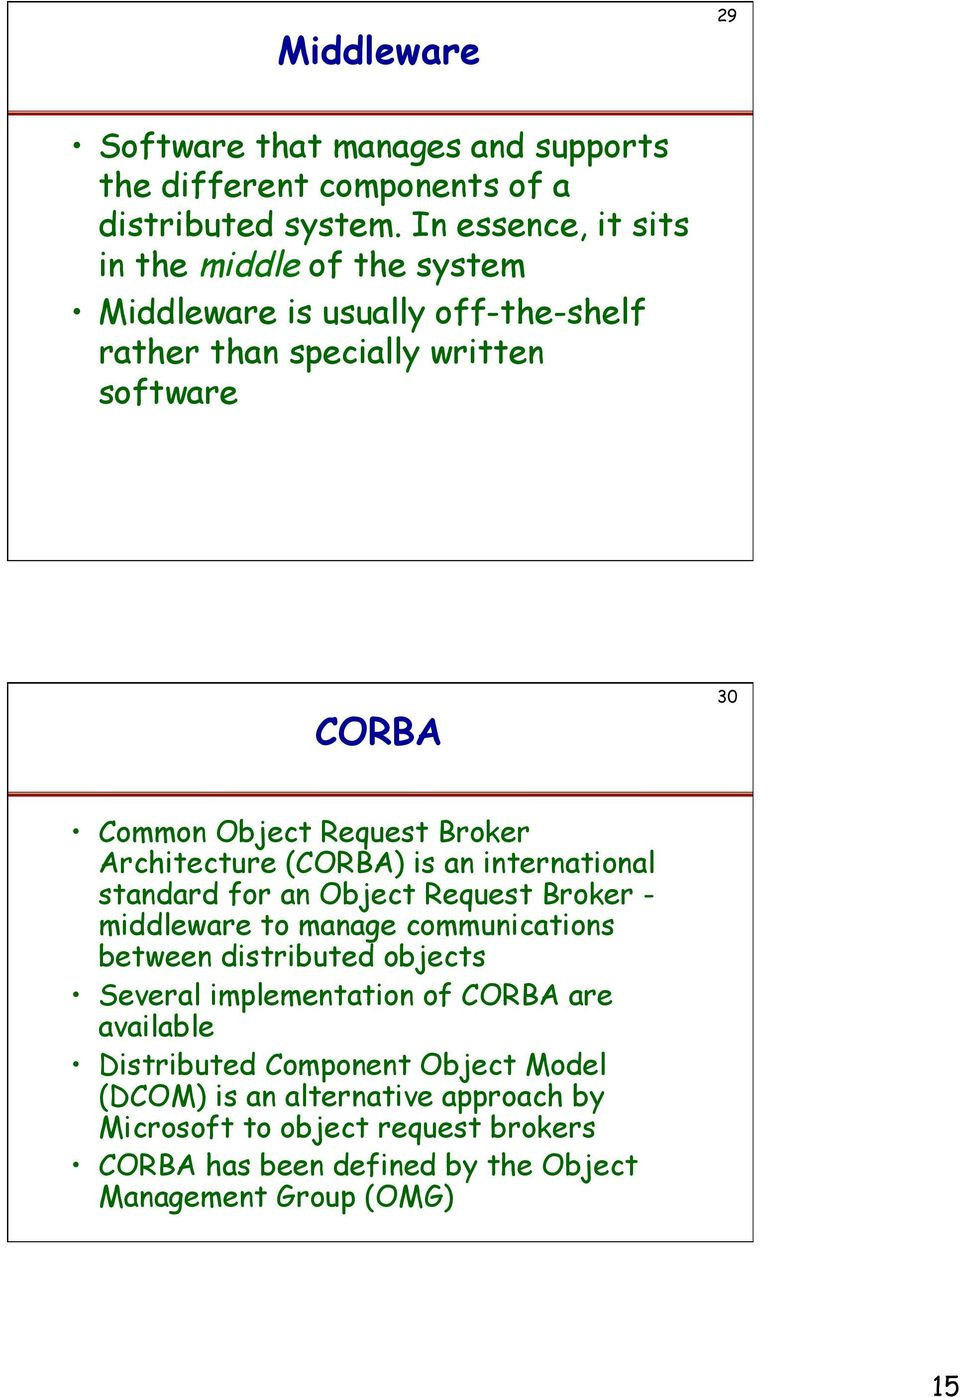 Broker Architecture (CORBA) is an international standard for an Object Request Broker - middleware to manage communications between distributed objects